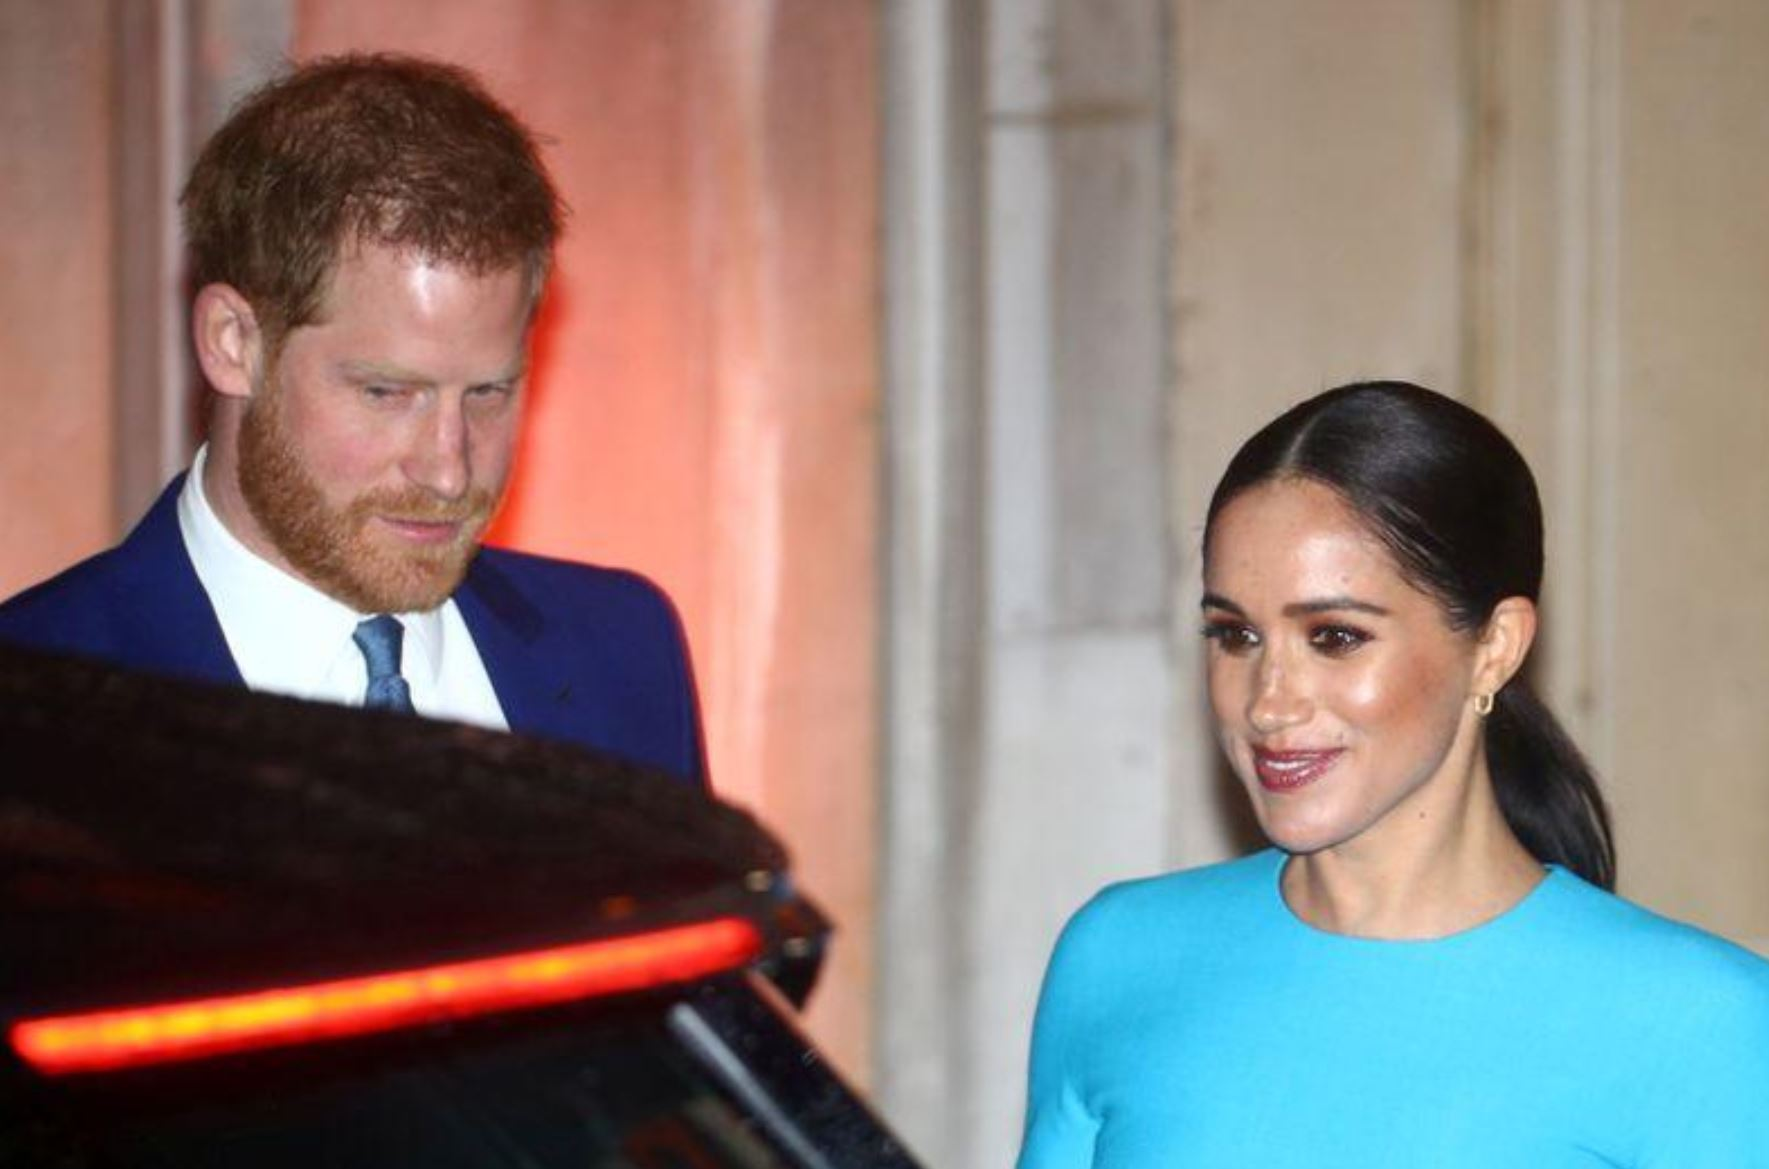 Harry and Meghan sign with A-list agency to hit the speaking circuit